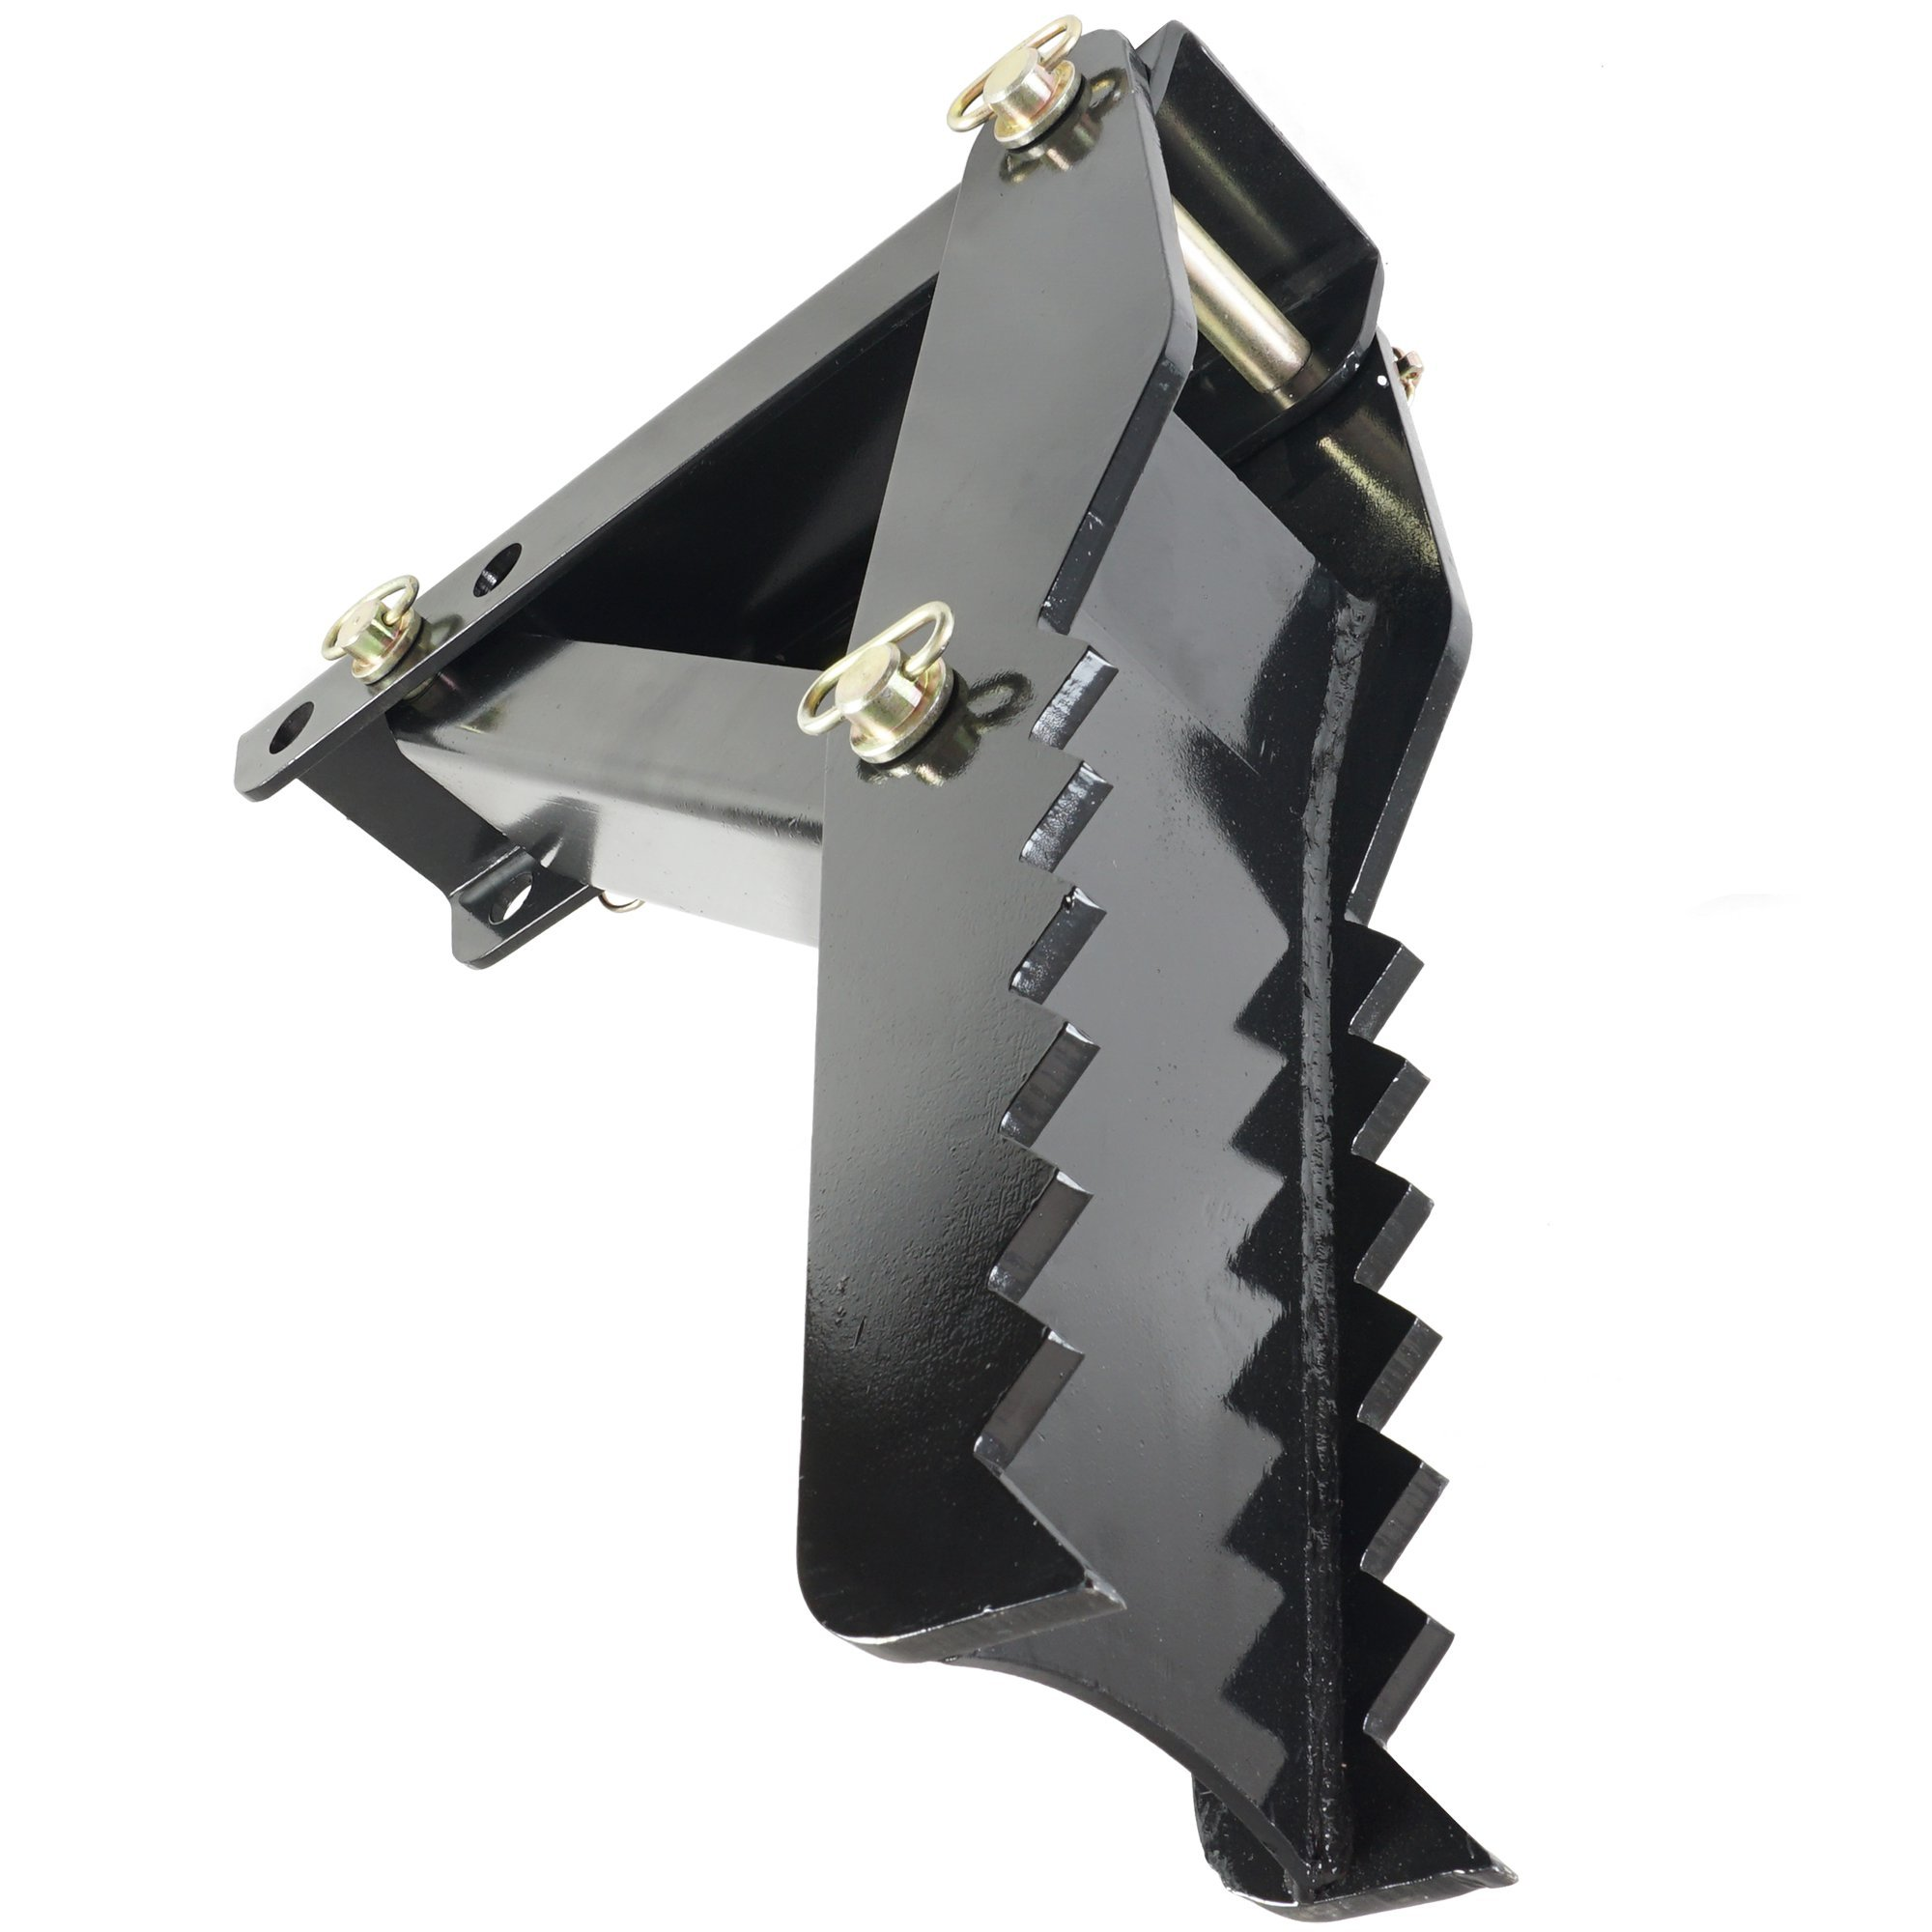 24'' Backhoe Thumb Hoe Clamp 1/2'' Steel Plate Assembly Weld On Adjustable Folding by Titan Attachments (Image #2)